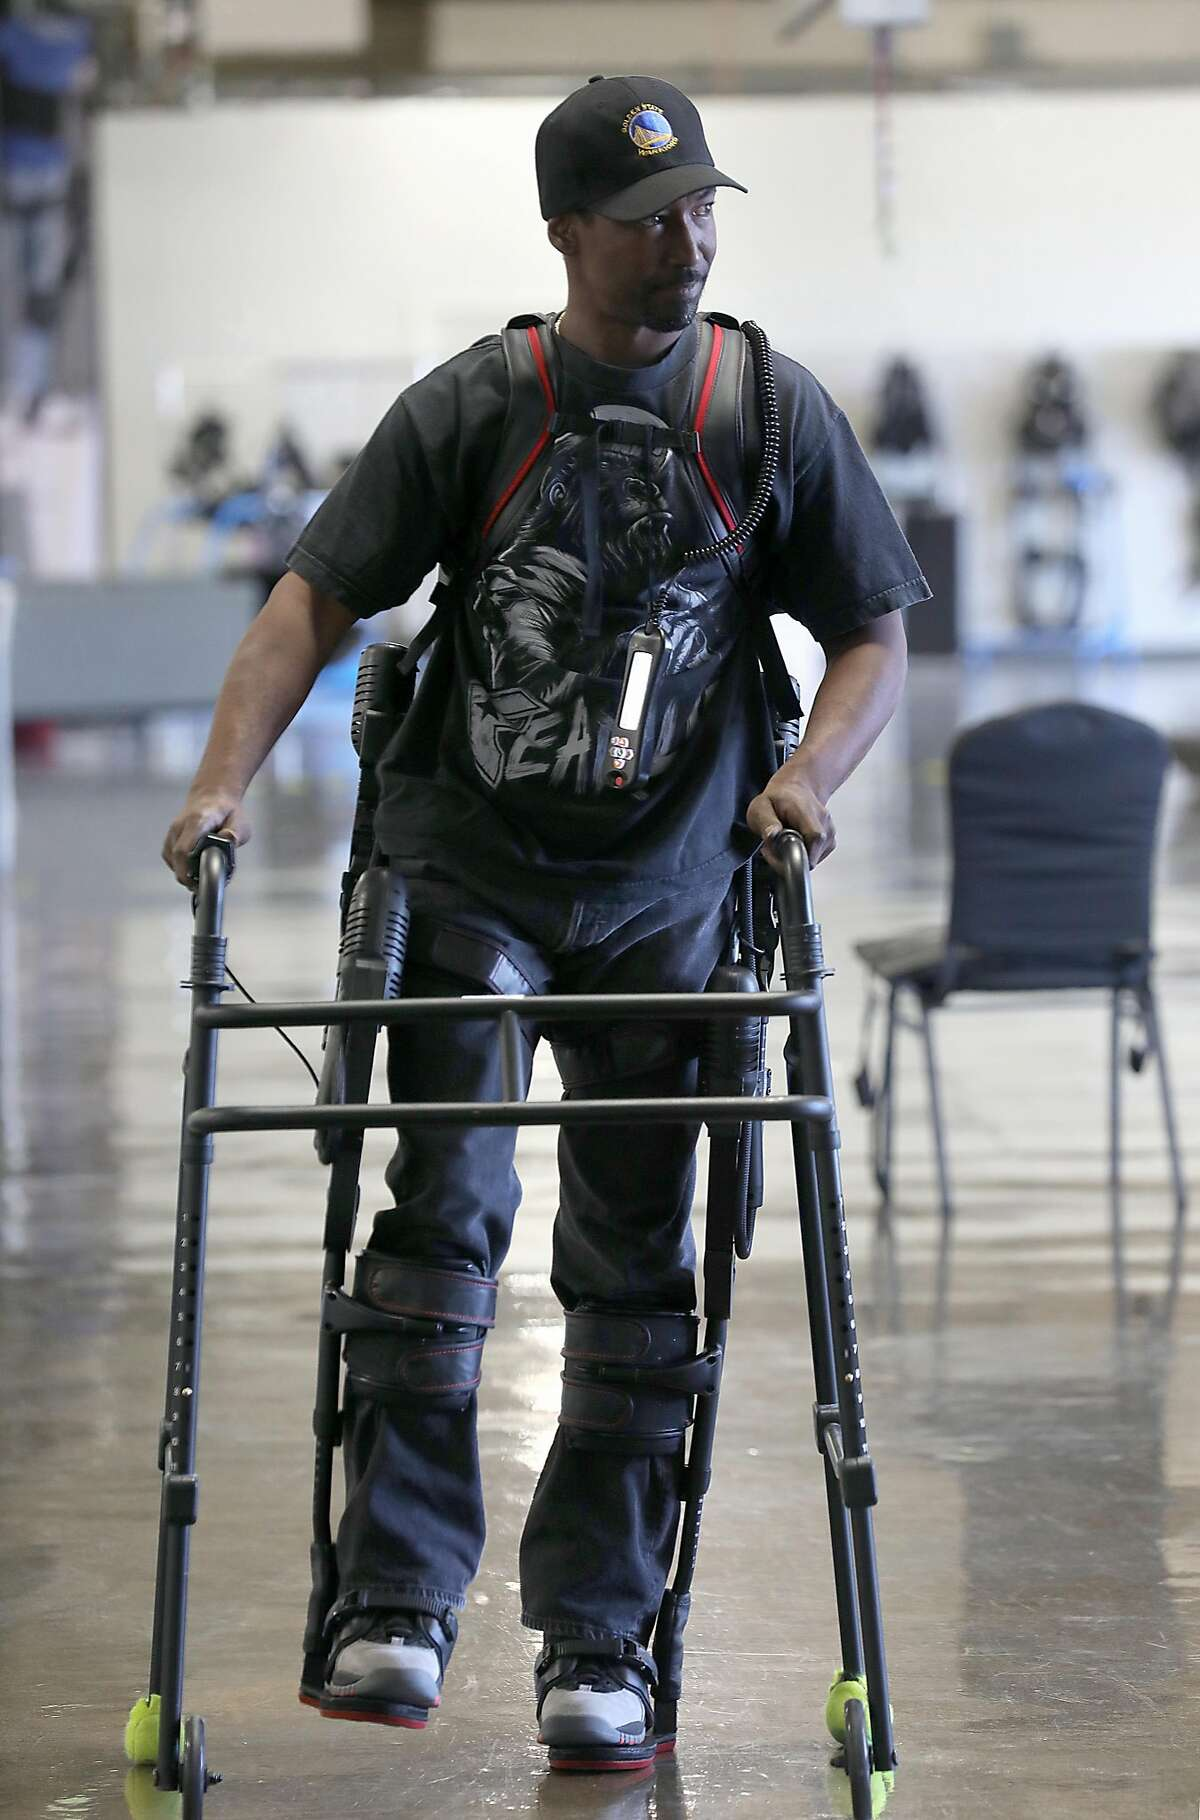 Service technician Oliese Stewart test walks a product used mostly for spinal cord injuries with the help of physical therapists at Ekso Bionics on Wednesday, June 20, 2018 in Richmond, Calif.